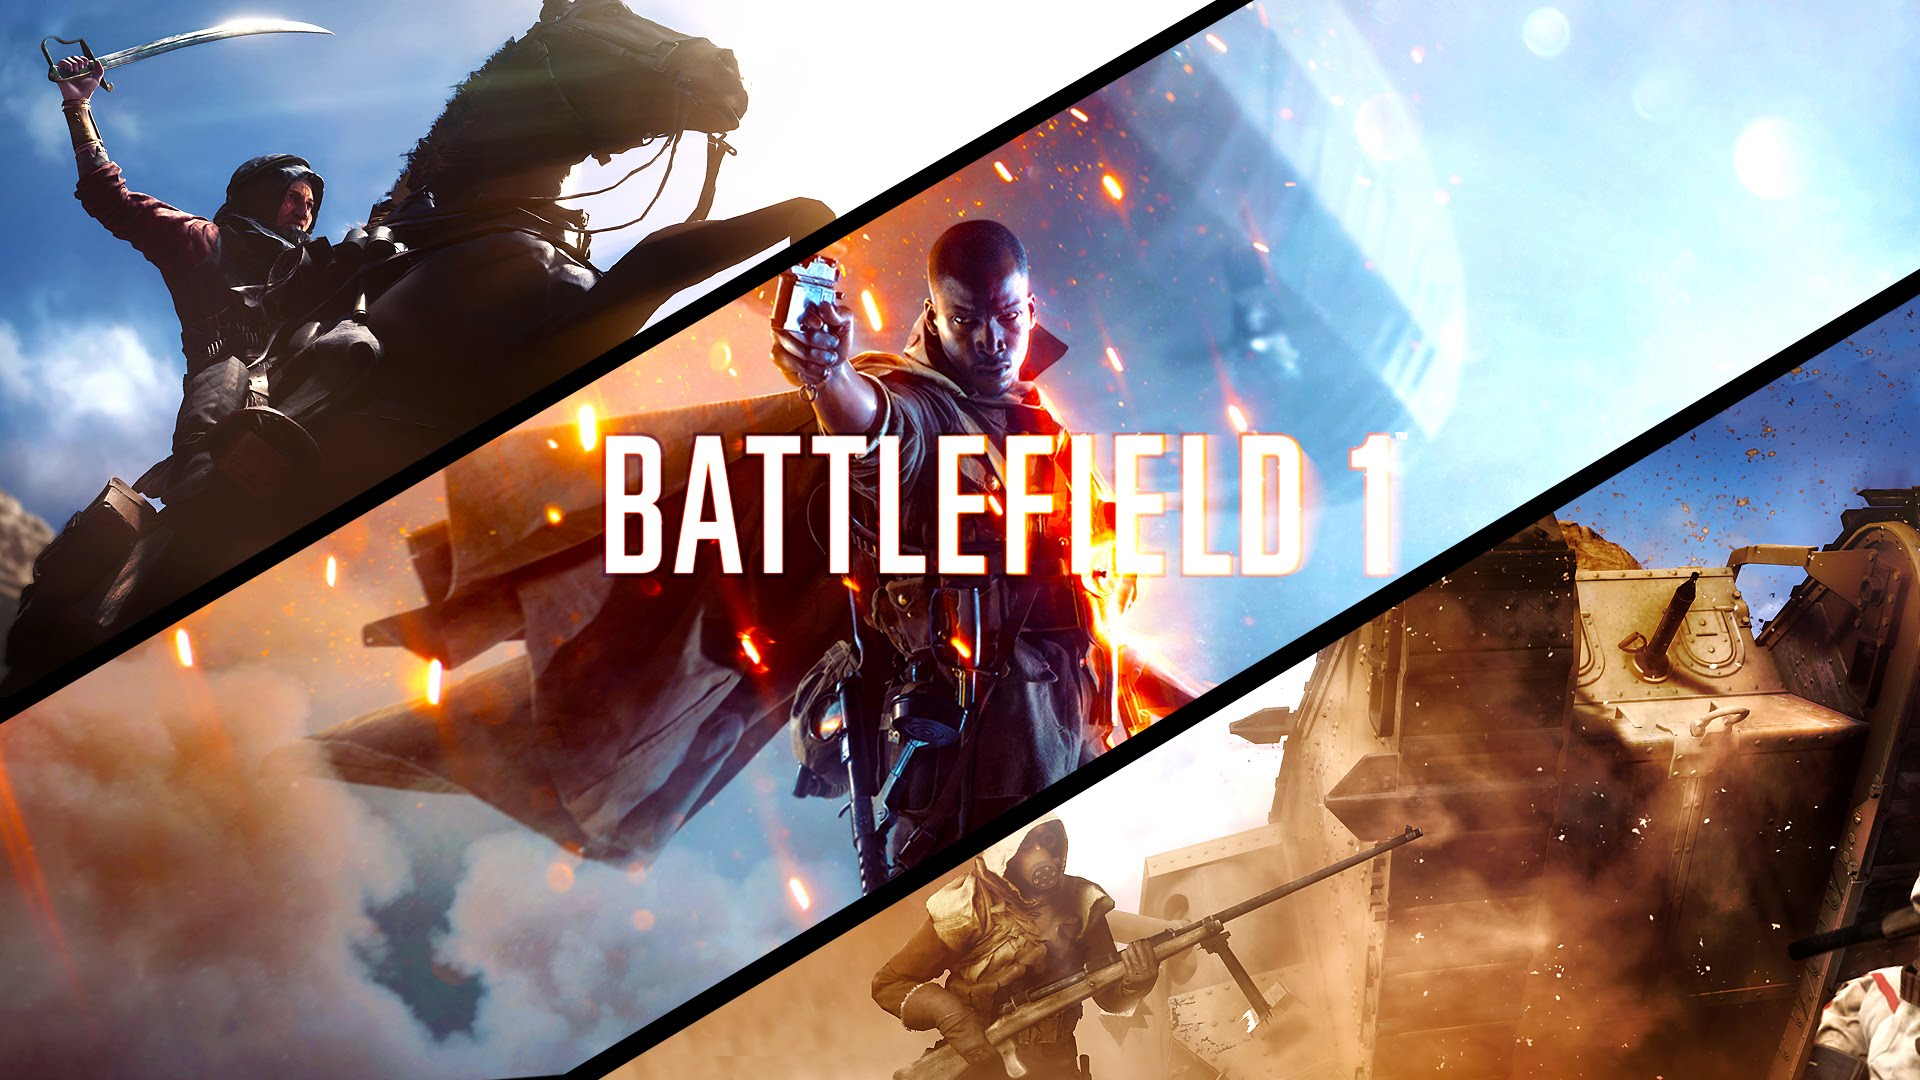 Let's Play Battlefield 1 PC at 4K 60fps